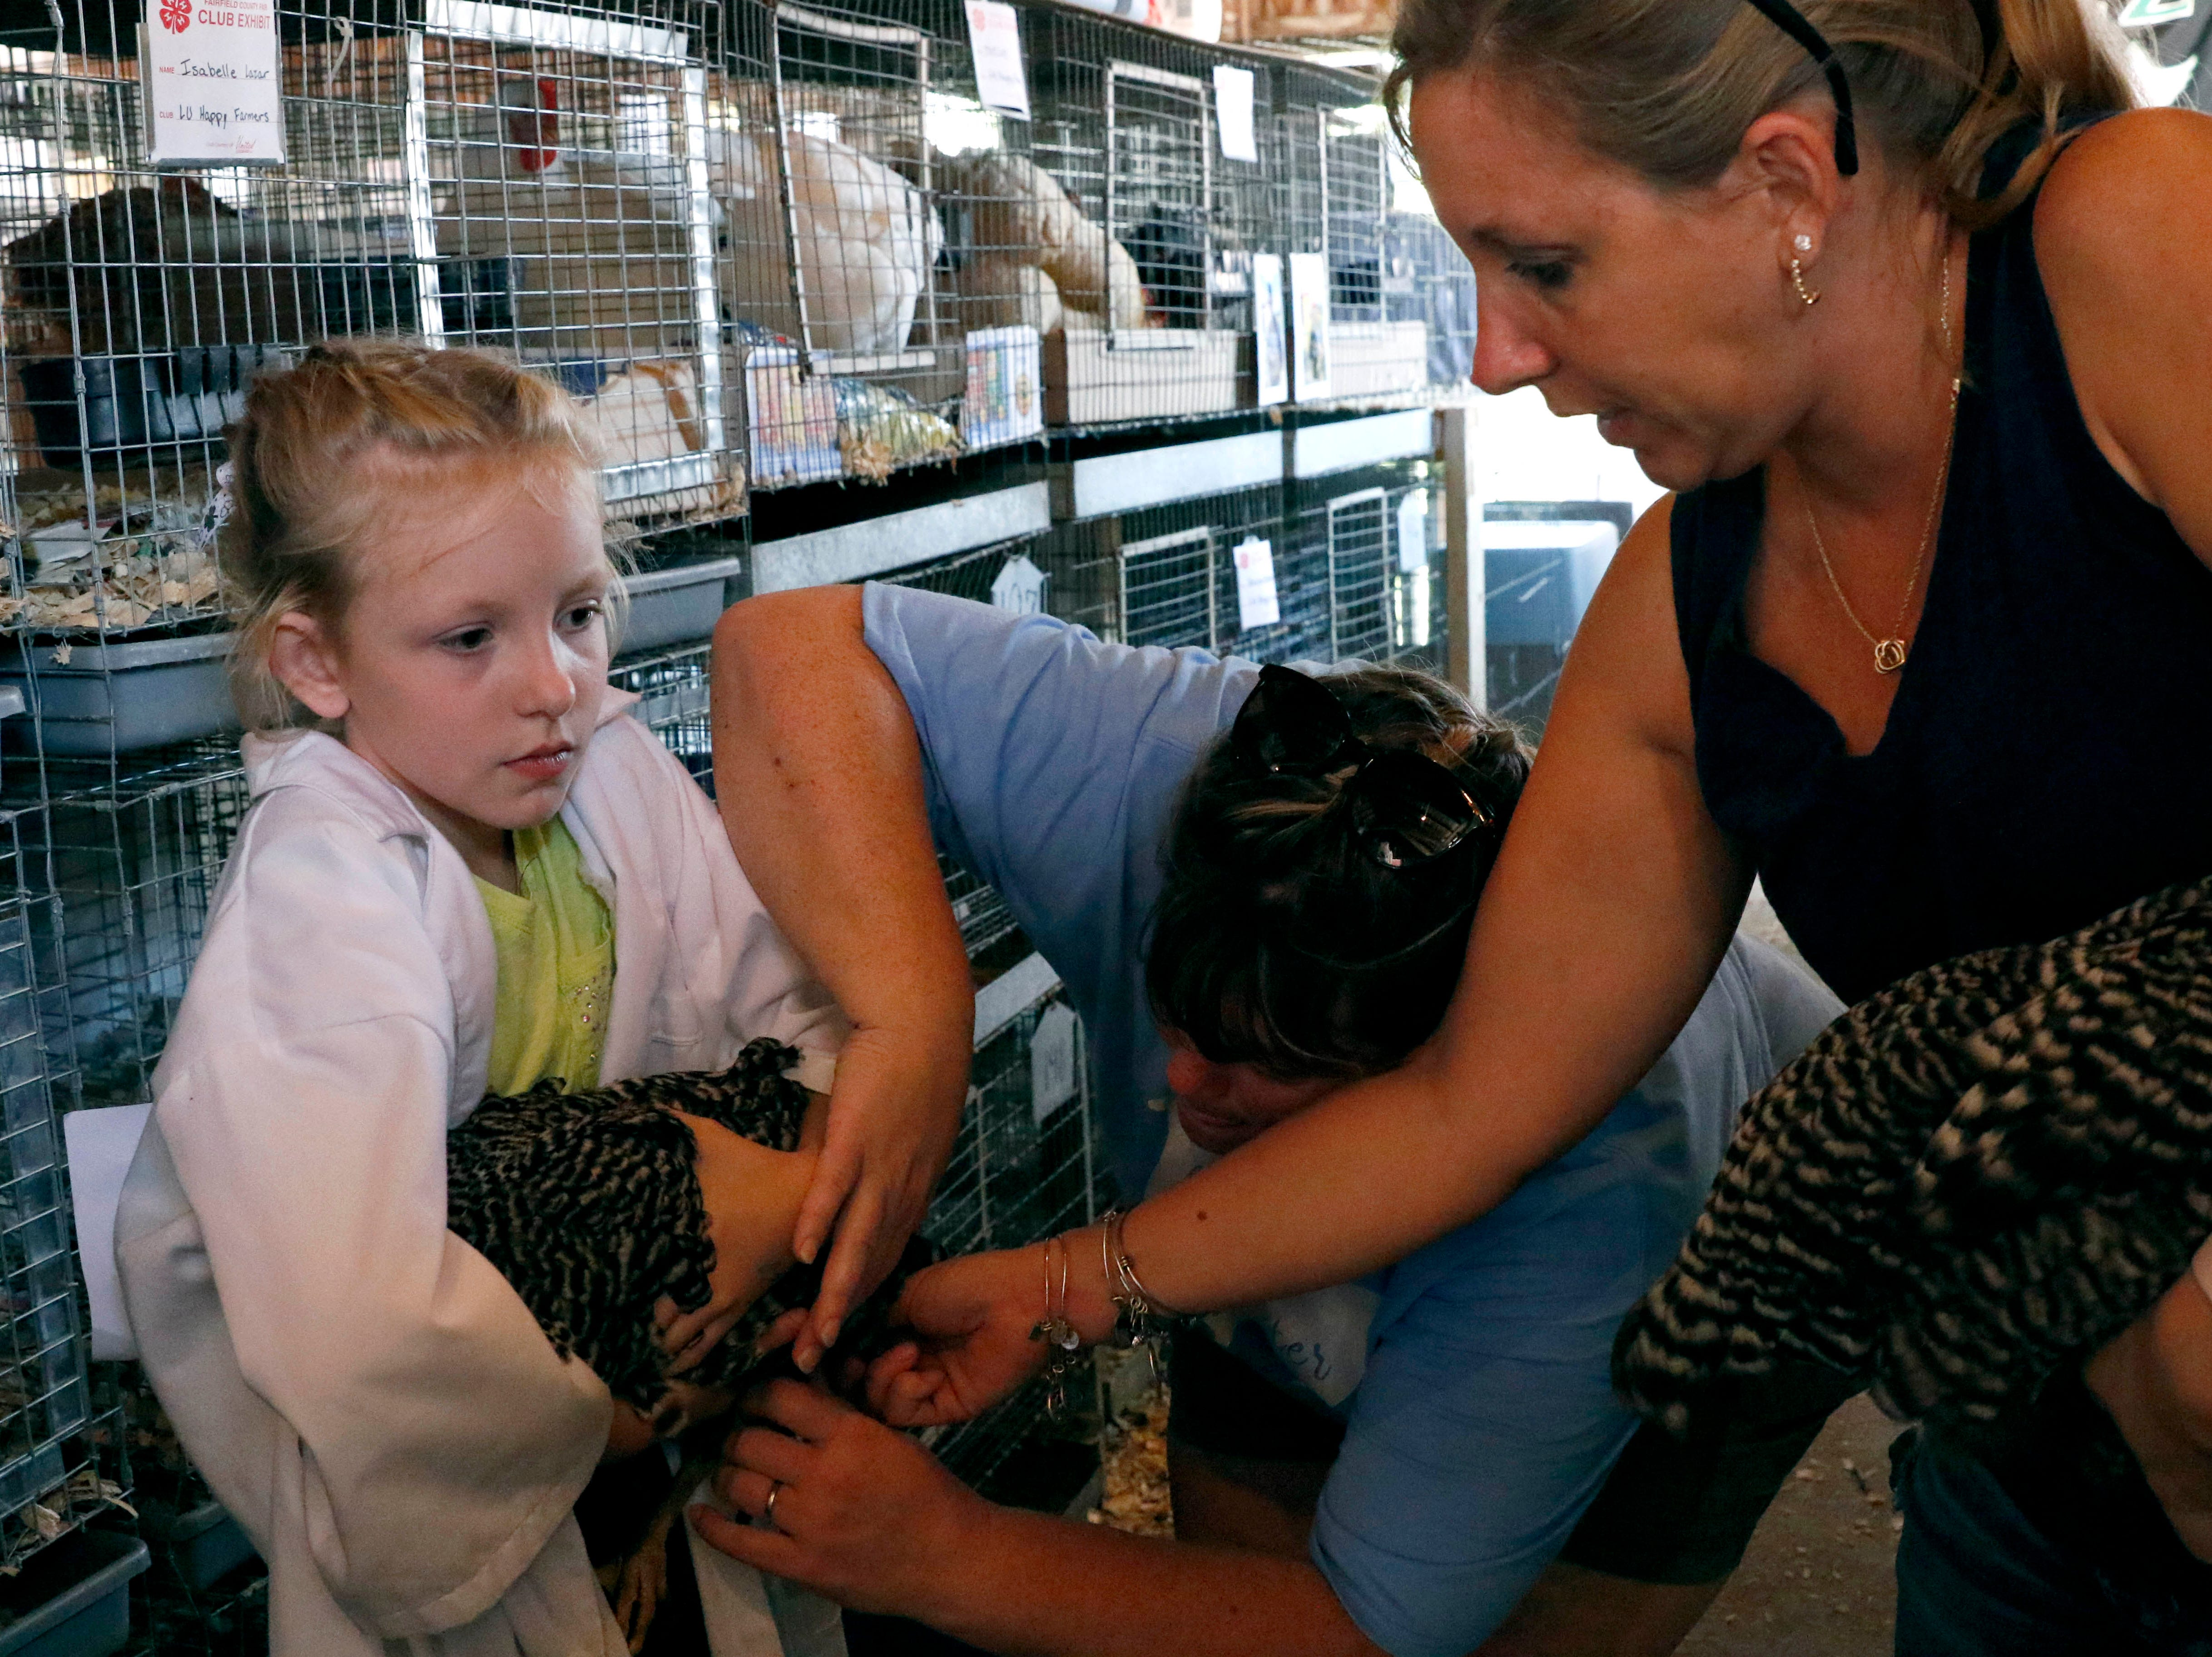 L.U. Happy Farmer's 4-H Club adviser Betsy Loy and Emily Lazar help Keira Lazar, 9, hold a chicken before her showmanship competition Monday, Oct. 8, 2018, at the Fairfield County Fair in Lancaster. Members of LU Happy Farmer's and other clubs are collecting eggs laid by chickens during fair week to Foundation Dinners in Lancaster.